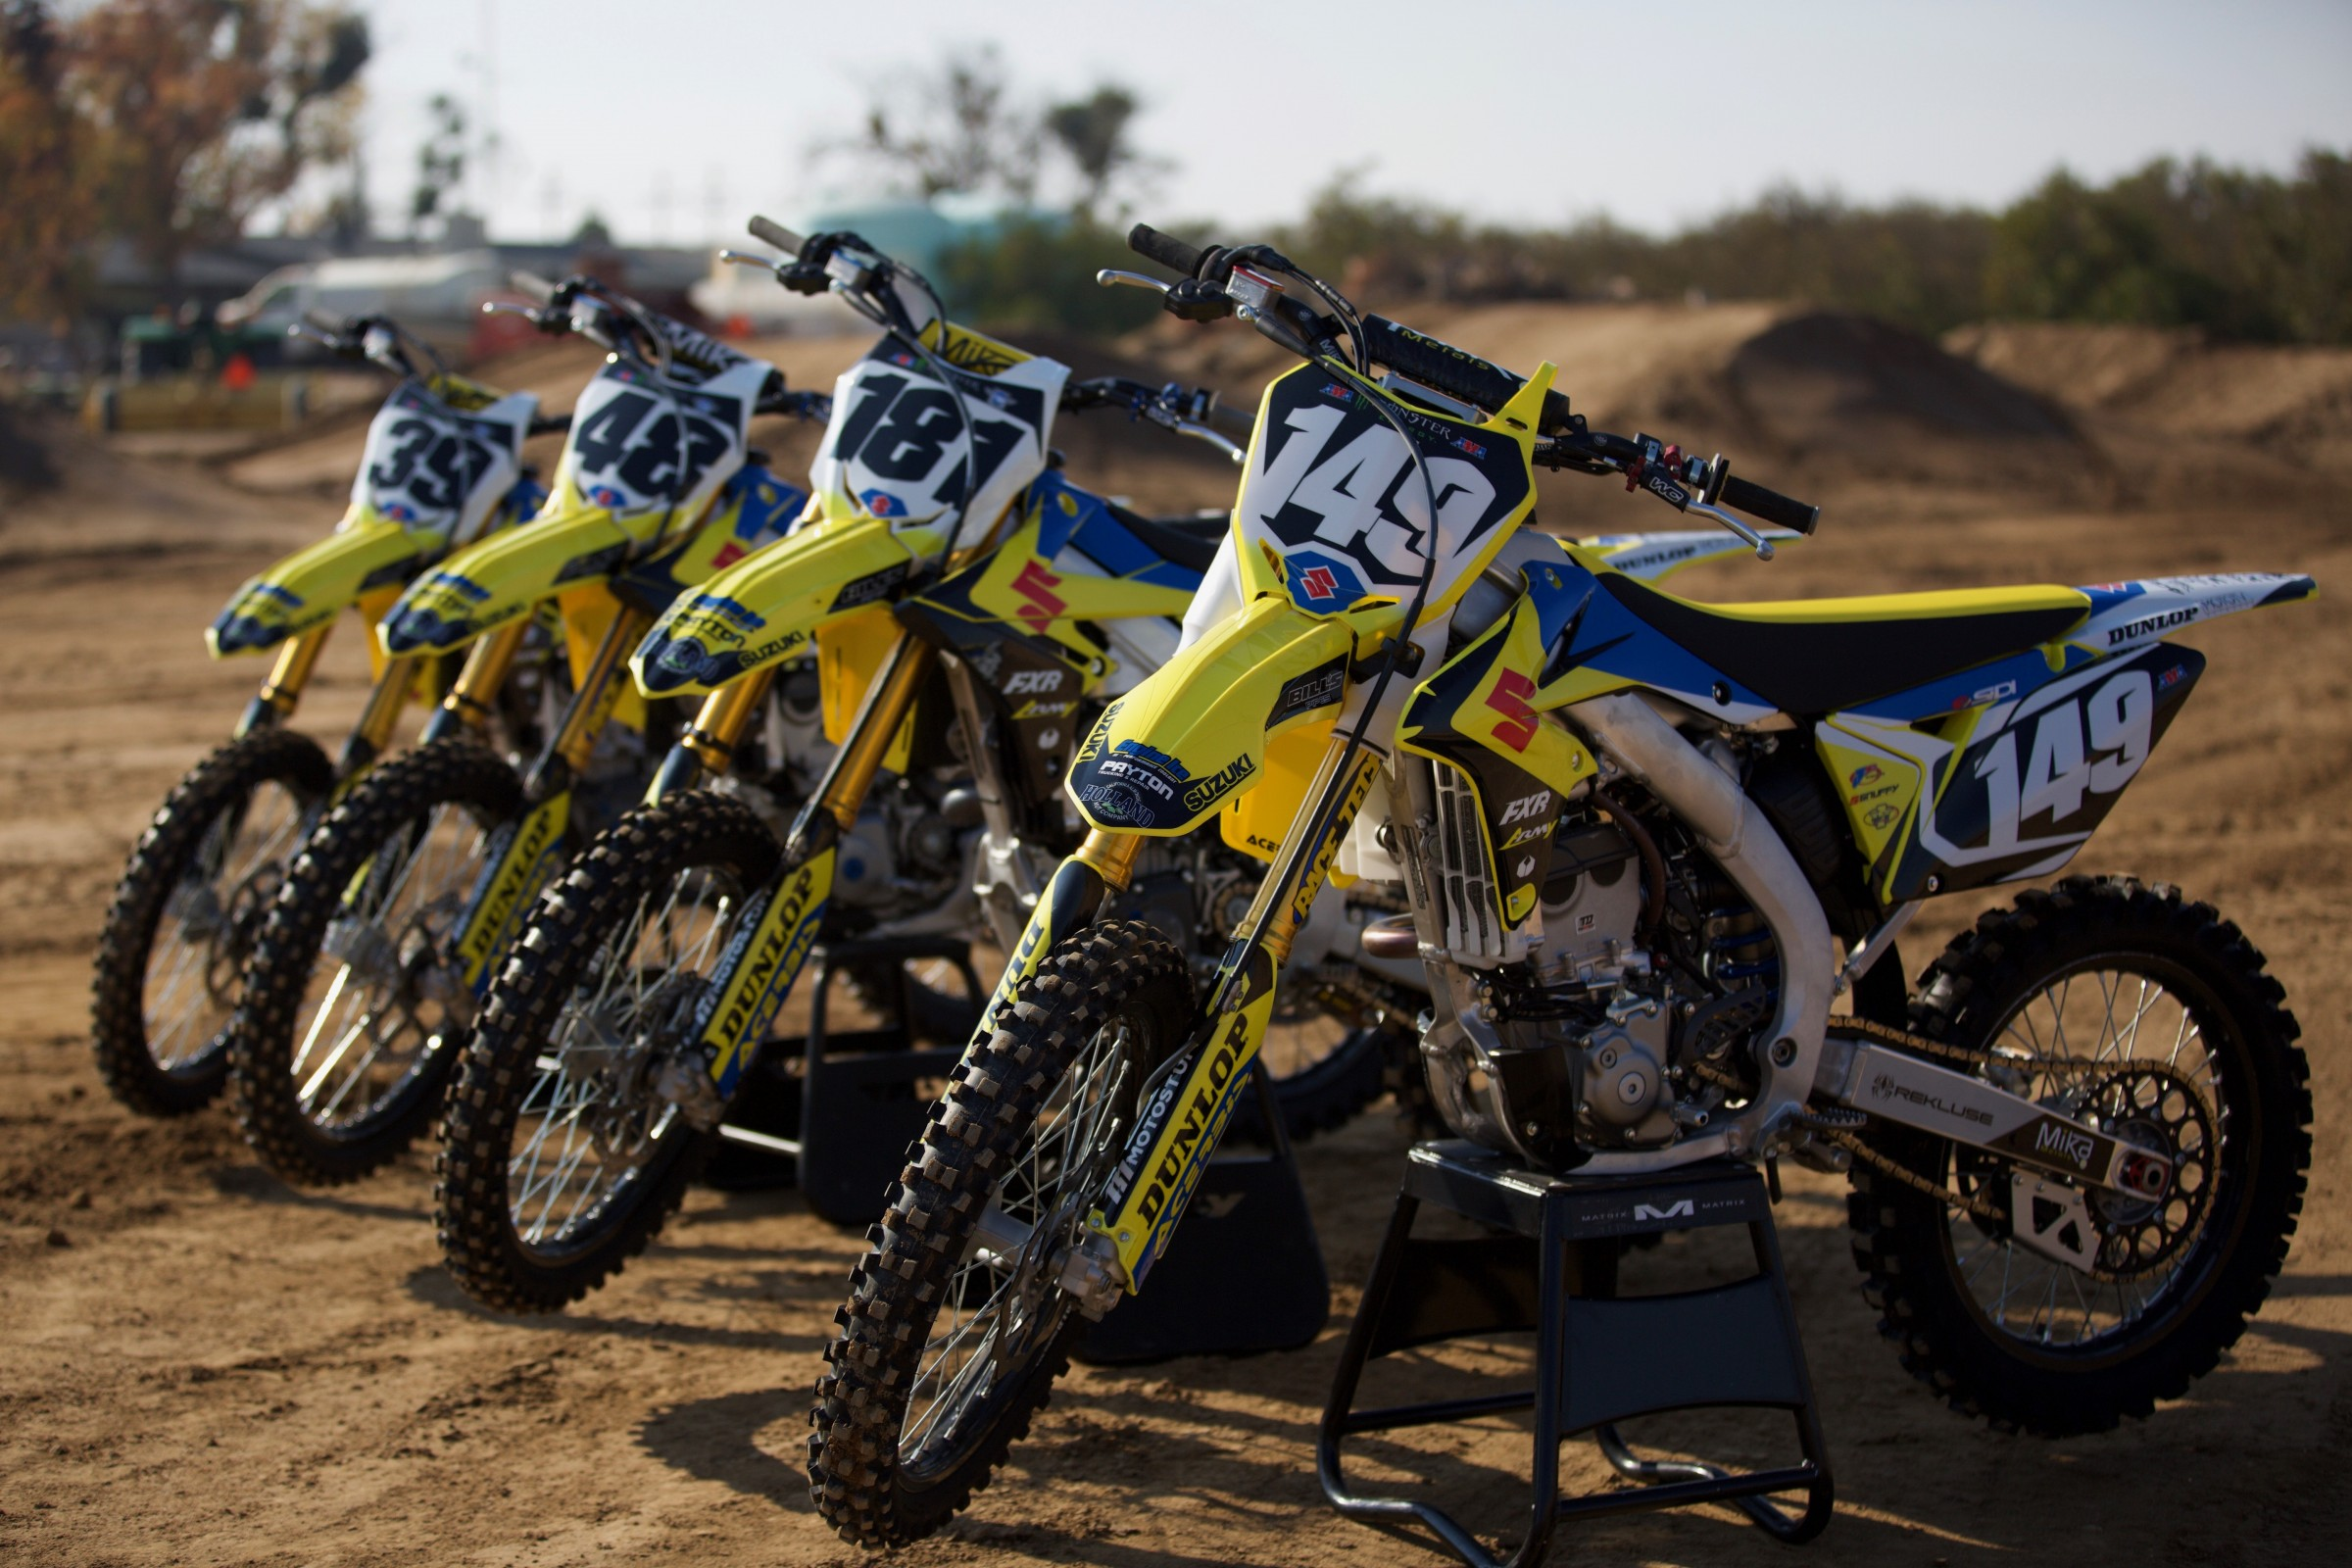 The H.E.P. Motorsports Suzuki team consists of Kyle Cunningham (#39), Henry Miller (#48), Dustin Pipes (#181), Tallon LaFountaine (#149), and recent addition Cedric Soubeyras.